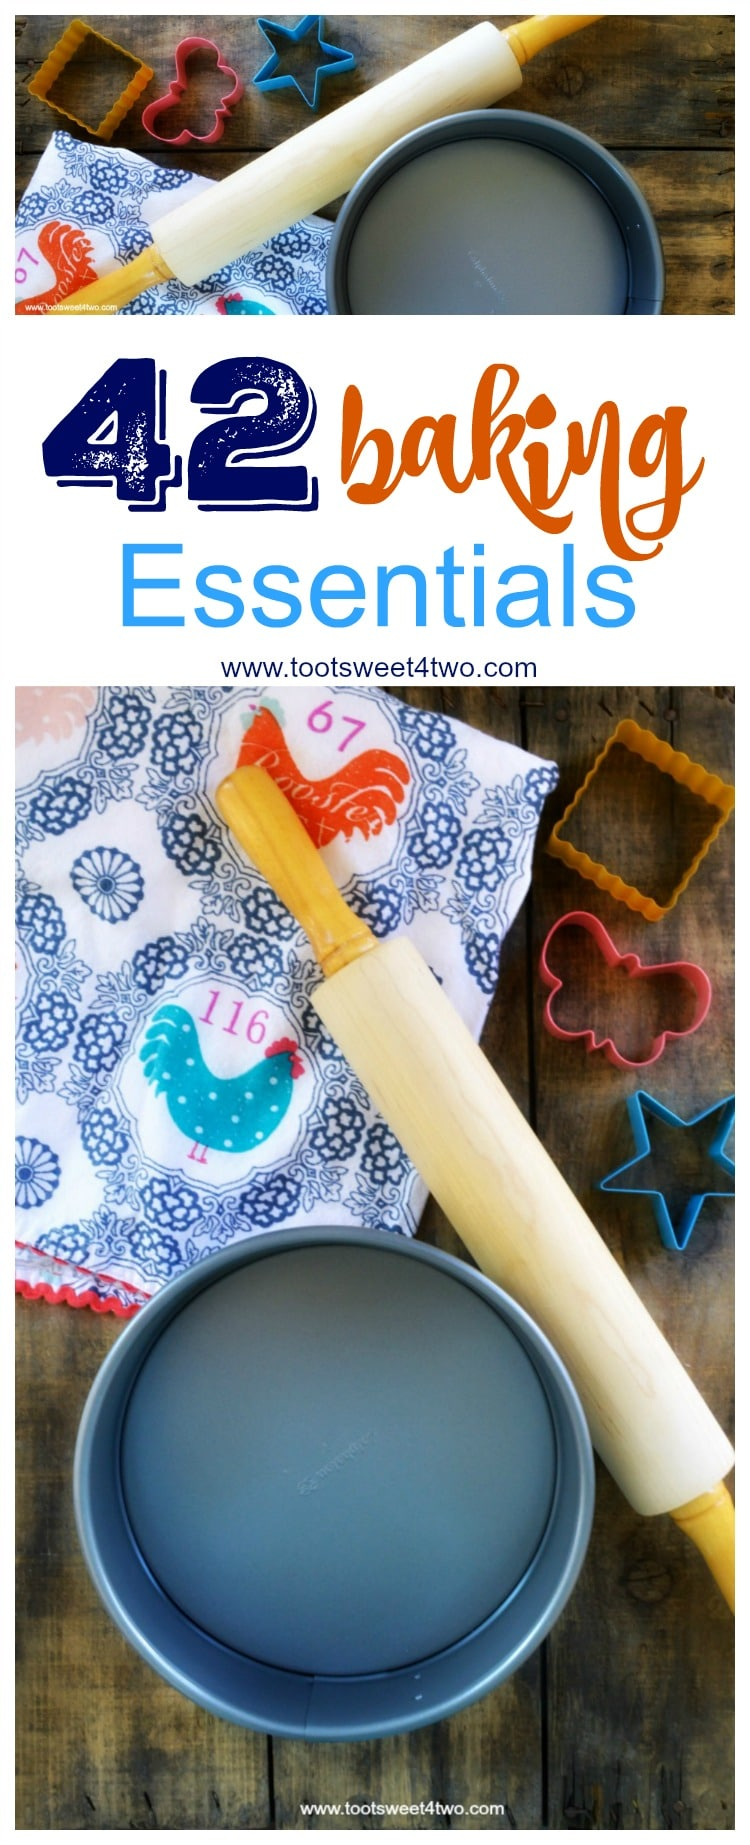 Do you know someone just getting their first place? Starting out, starting fresh, starting over? A baking enthusiast, bride-to-be, newlywed, recent graduate or someone just getting their first apartment or home? A comprehensive list of baking supplies and essential baking equipment for the home baker, 42 Baking Essentials includes a FREE printable checklist to use as a reference to start your baking tools, baking utensils and kitchen baking equipment and supplies collection or to use as a checklist for your household inventory binder. | www.tootsweet4two.com